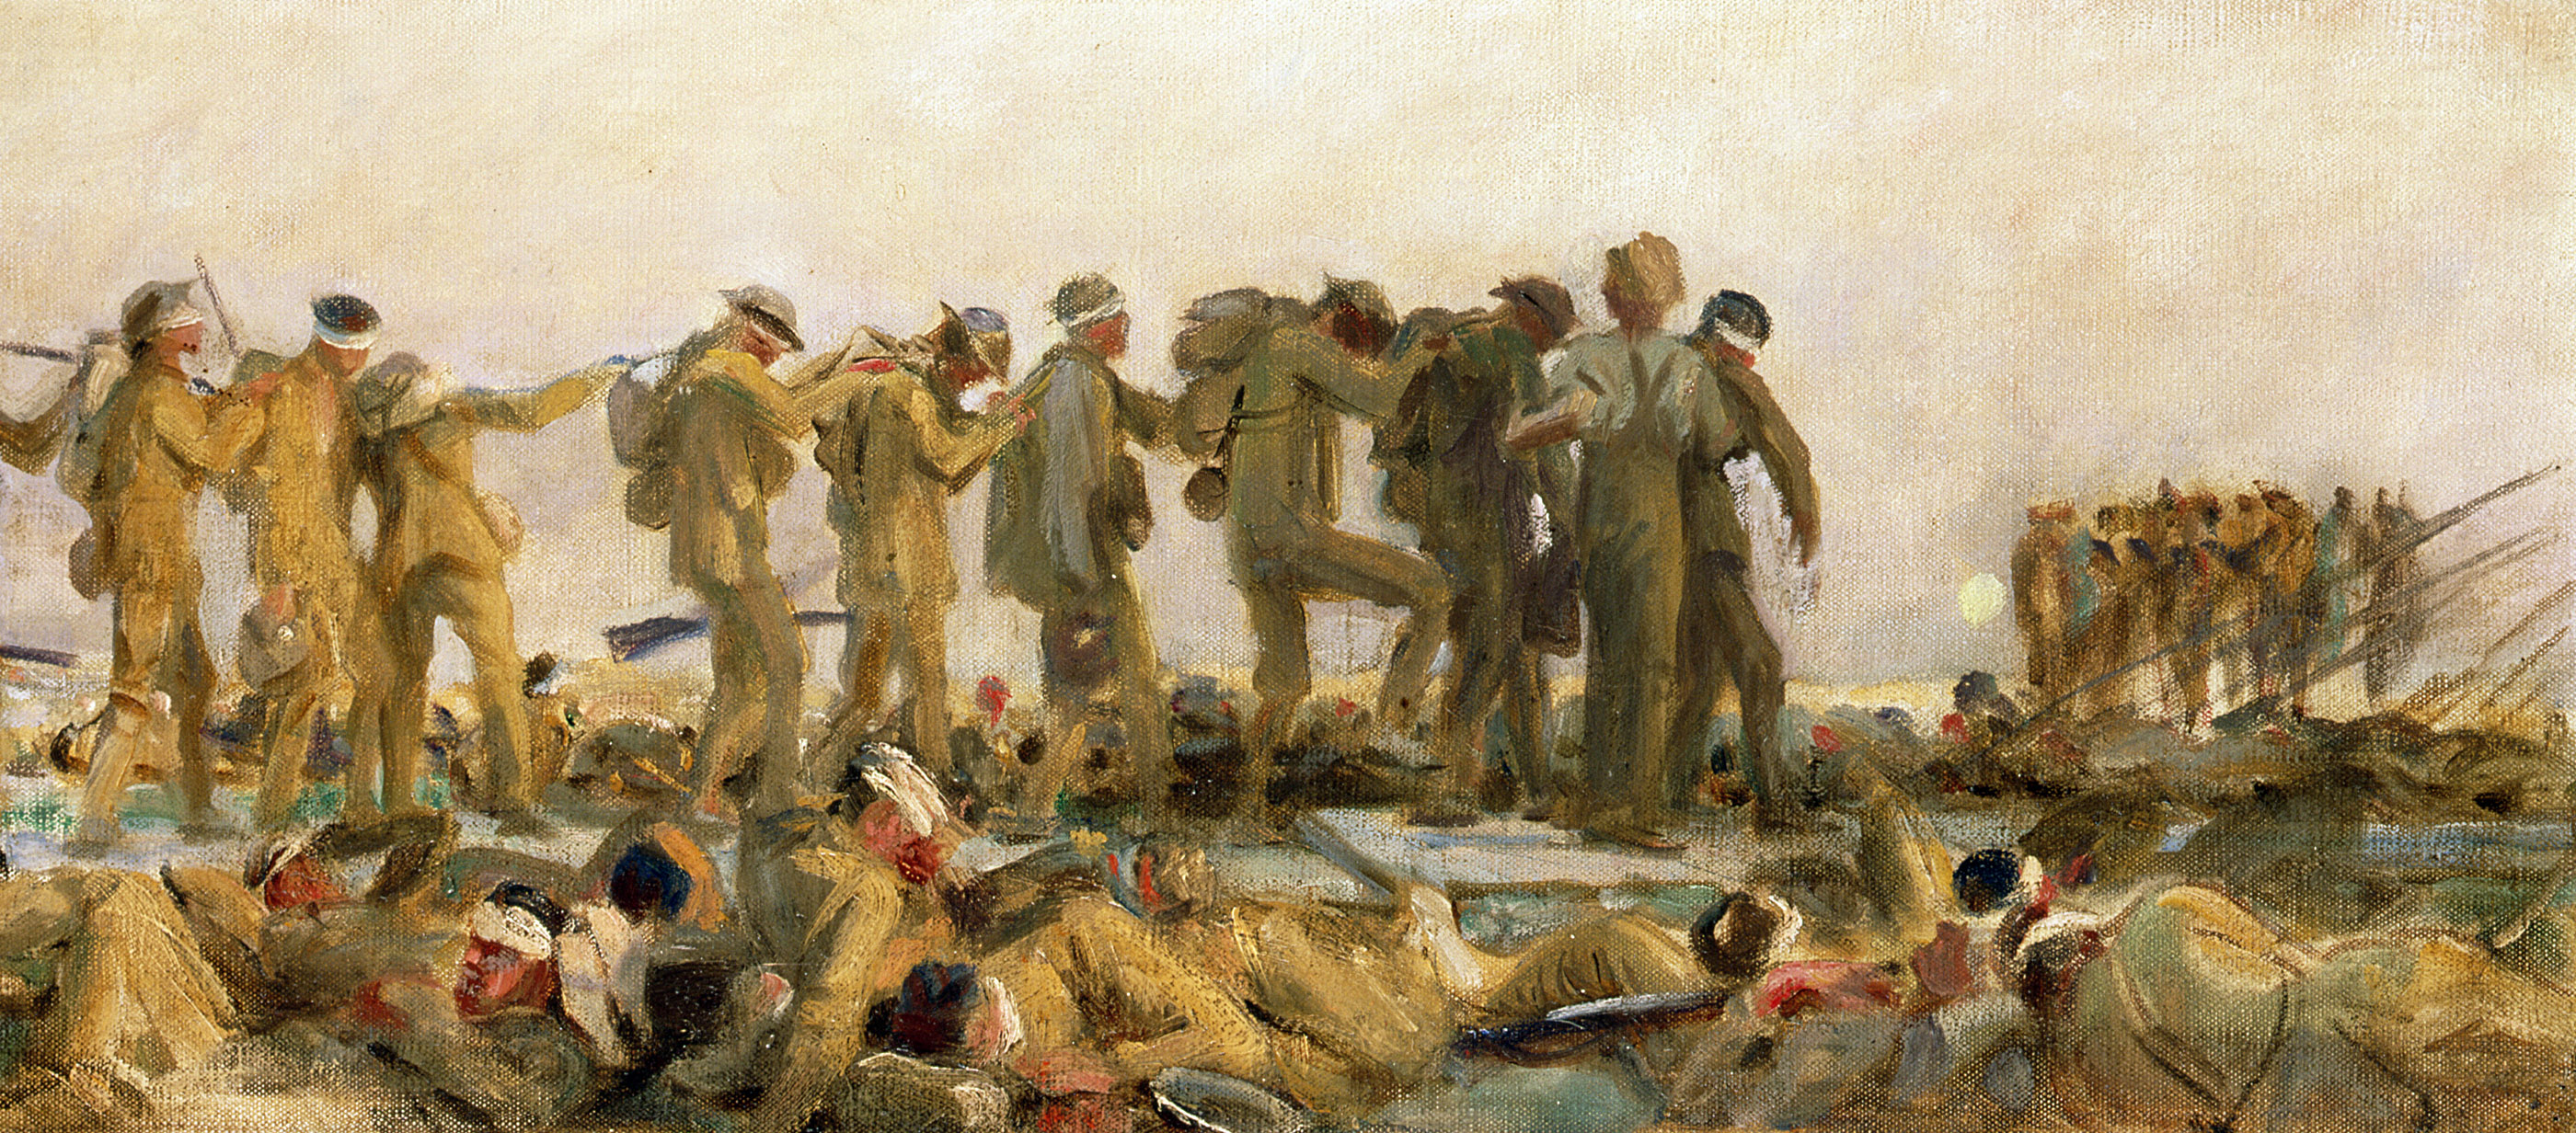 Oil study of Gassed, by John Singer Sargent, 1918–1919.